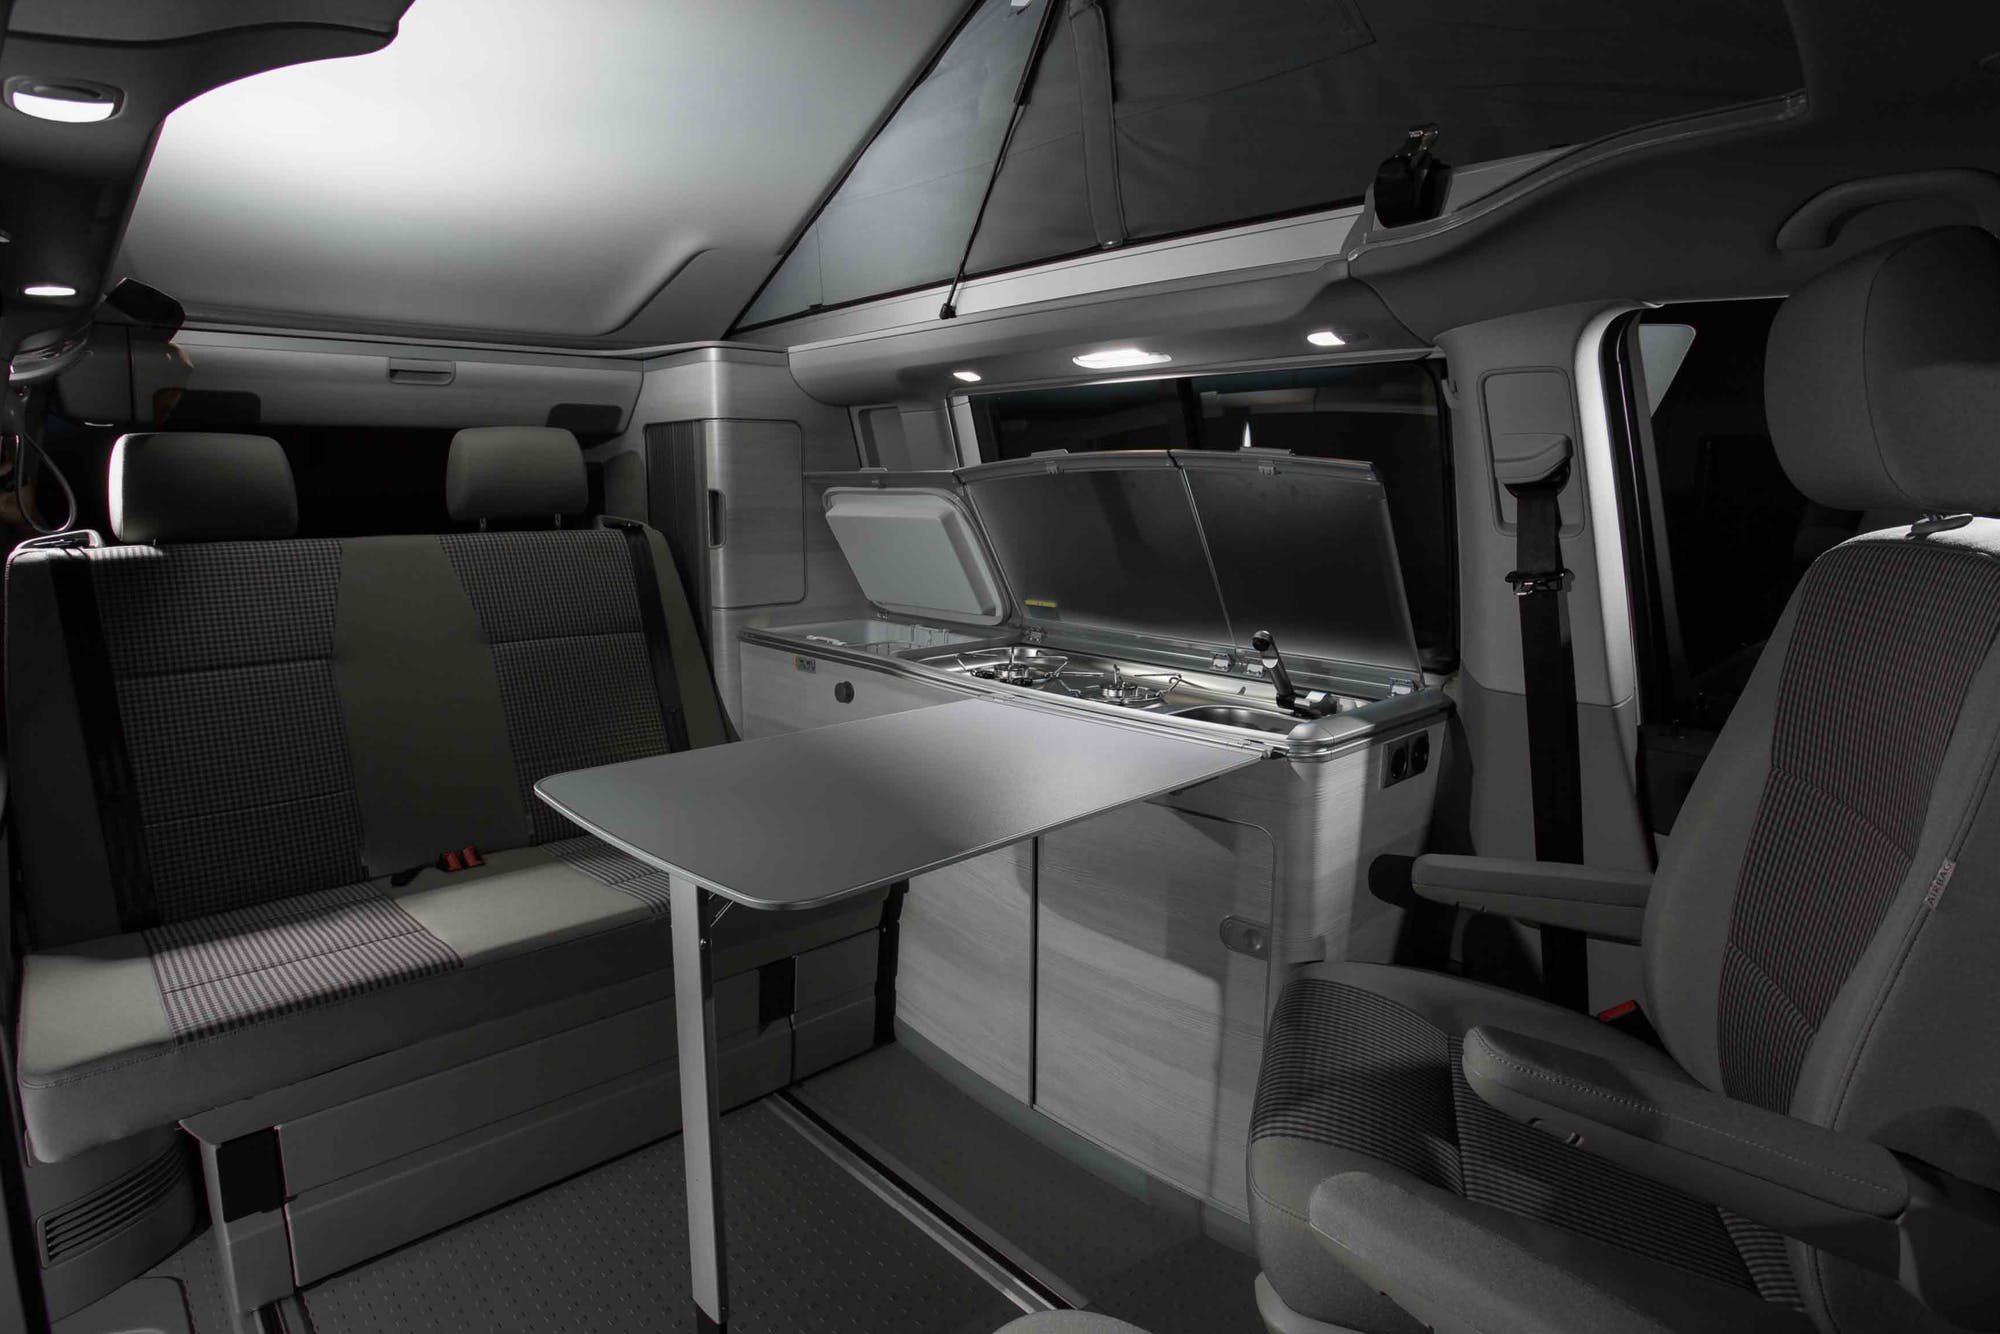 VW California Model interior with kitchen